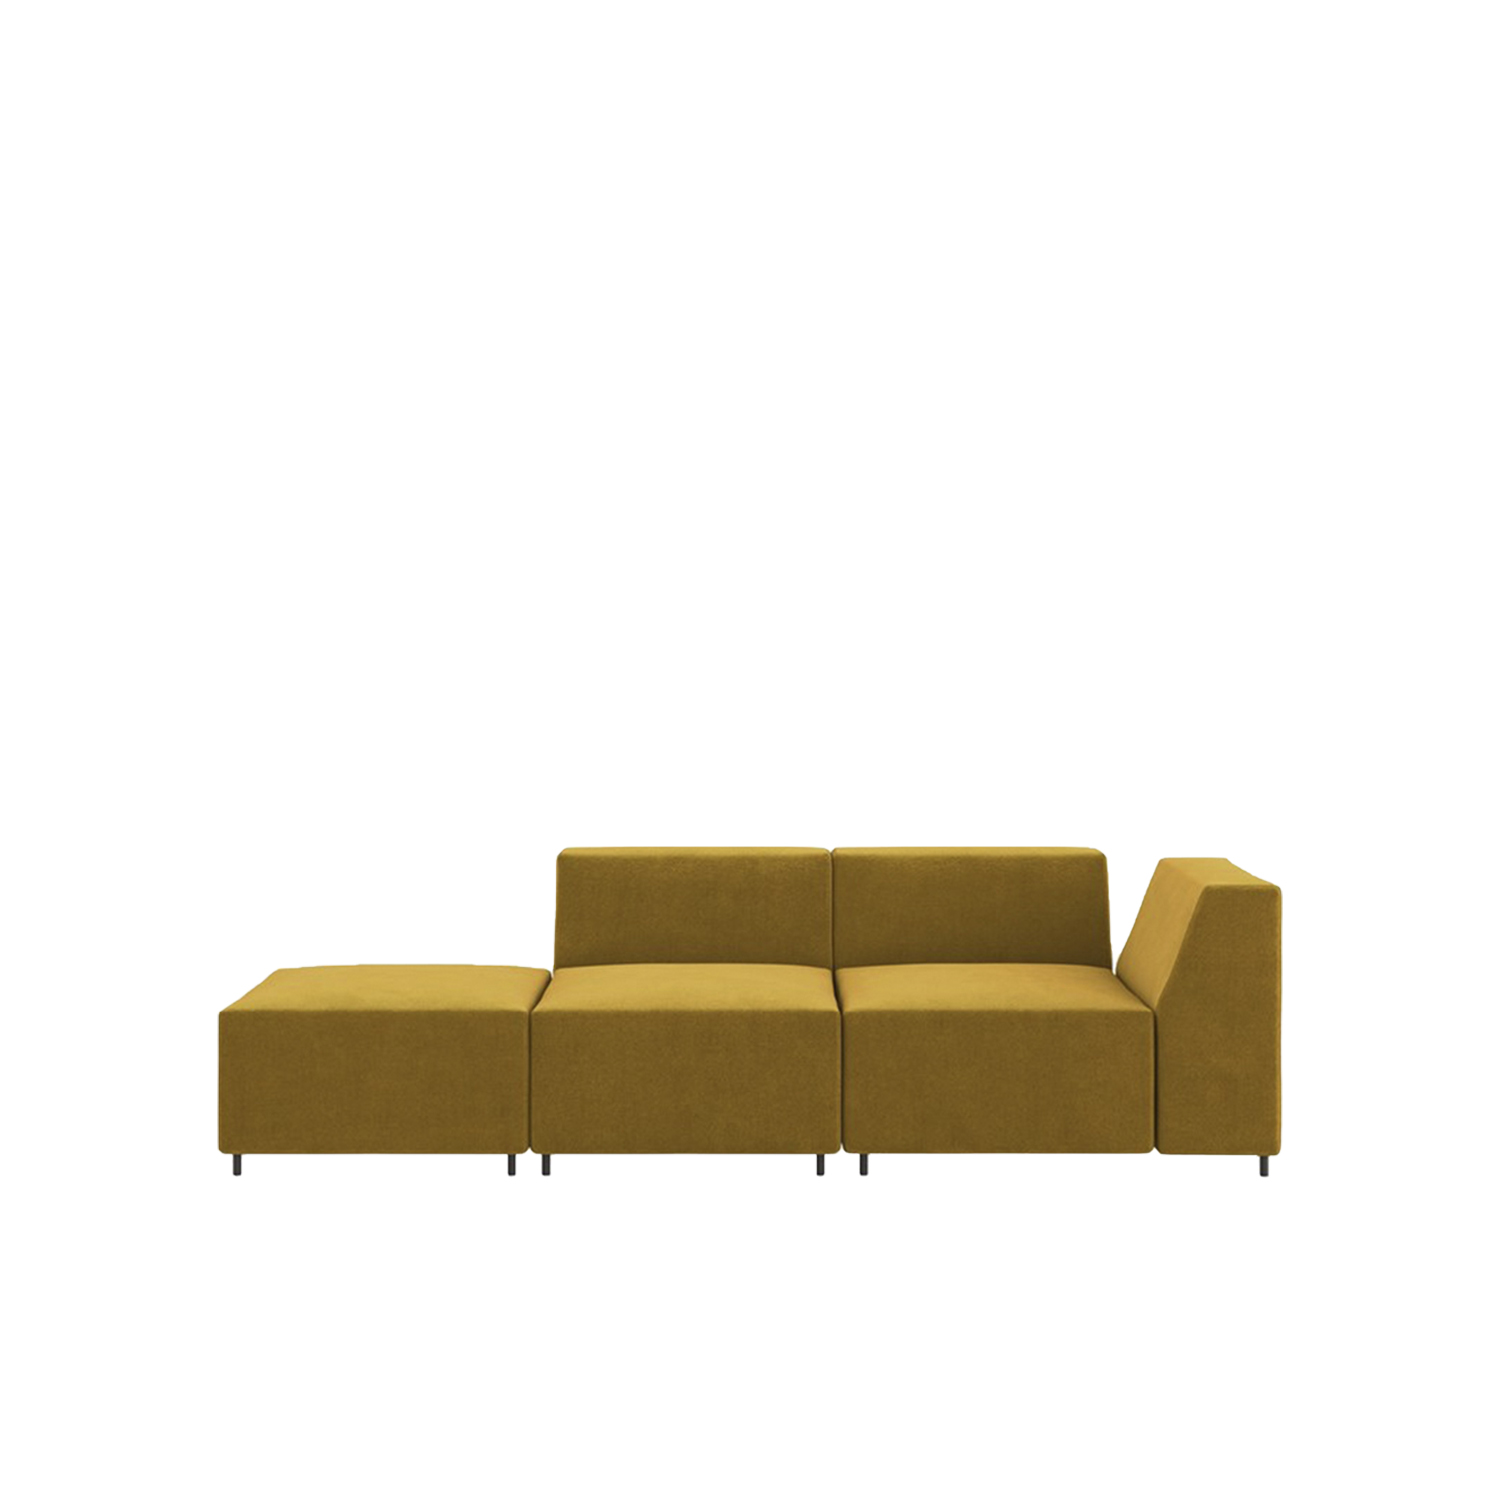 Quadro Sectional Sofa - Quadro is a modular system which enables the formation of sofas, armchairs and ottomans in a variety of combinations and dimensions addressing the needs of any space or environment with simplicity and comfort for large and small spaces.‎ All covers are removable.‎ | Matter of Stuff